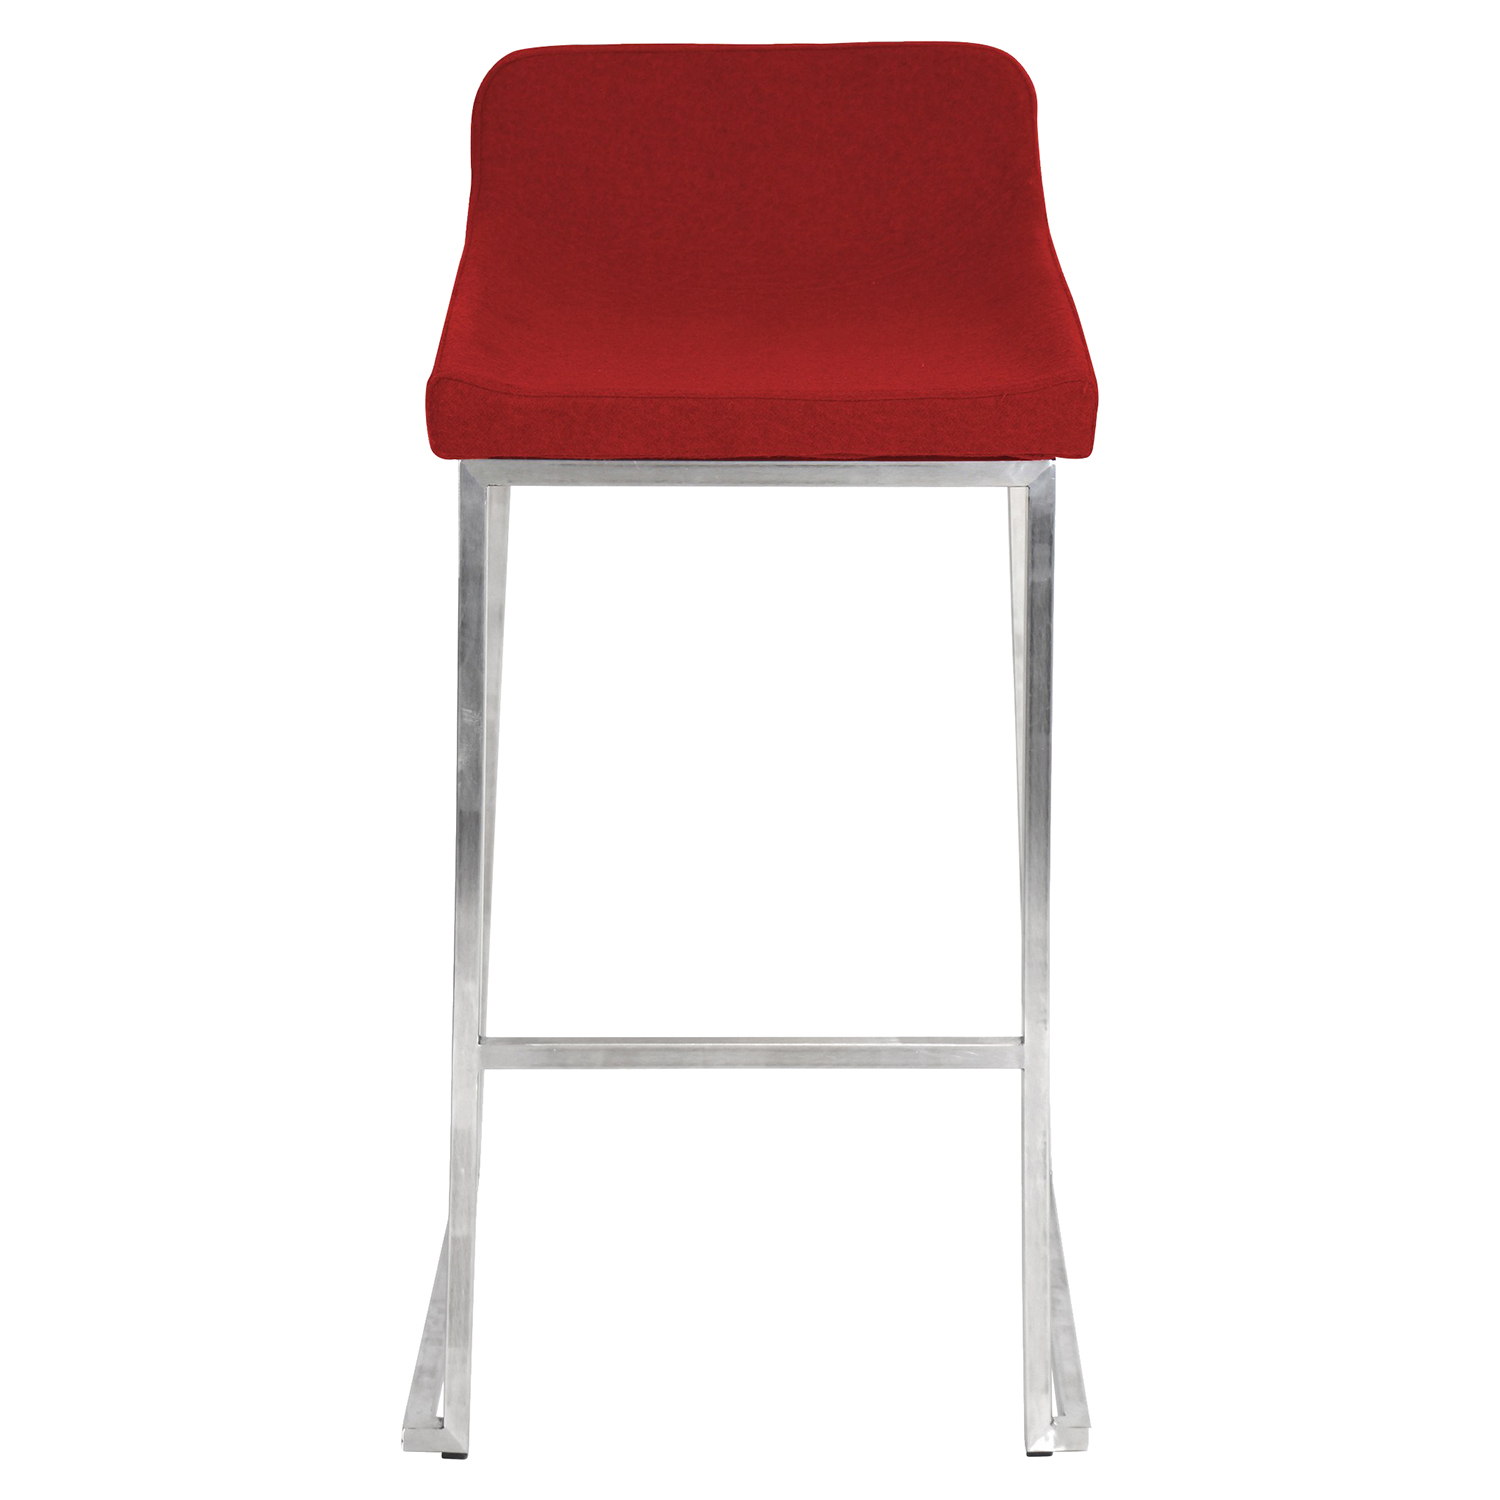 Drop-In Stackable Barstool - Red (Set of 2) - LMS-BS-DROPIN-R2